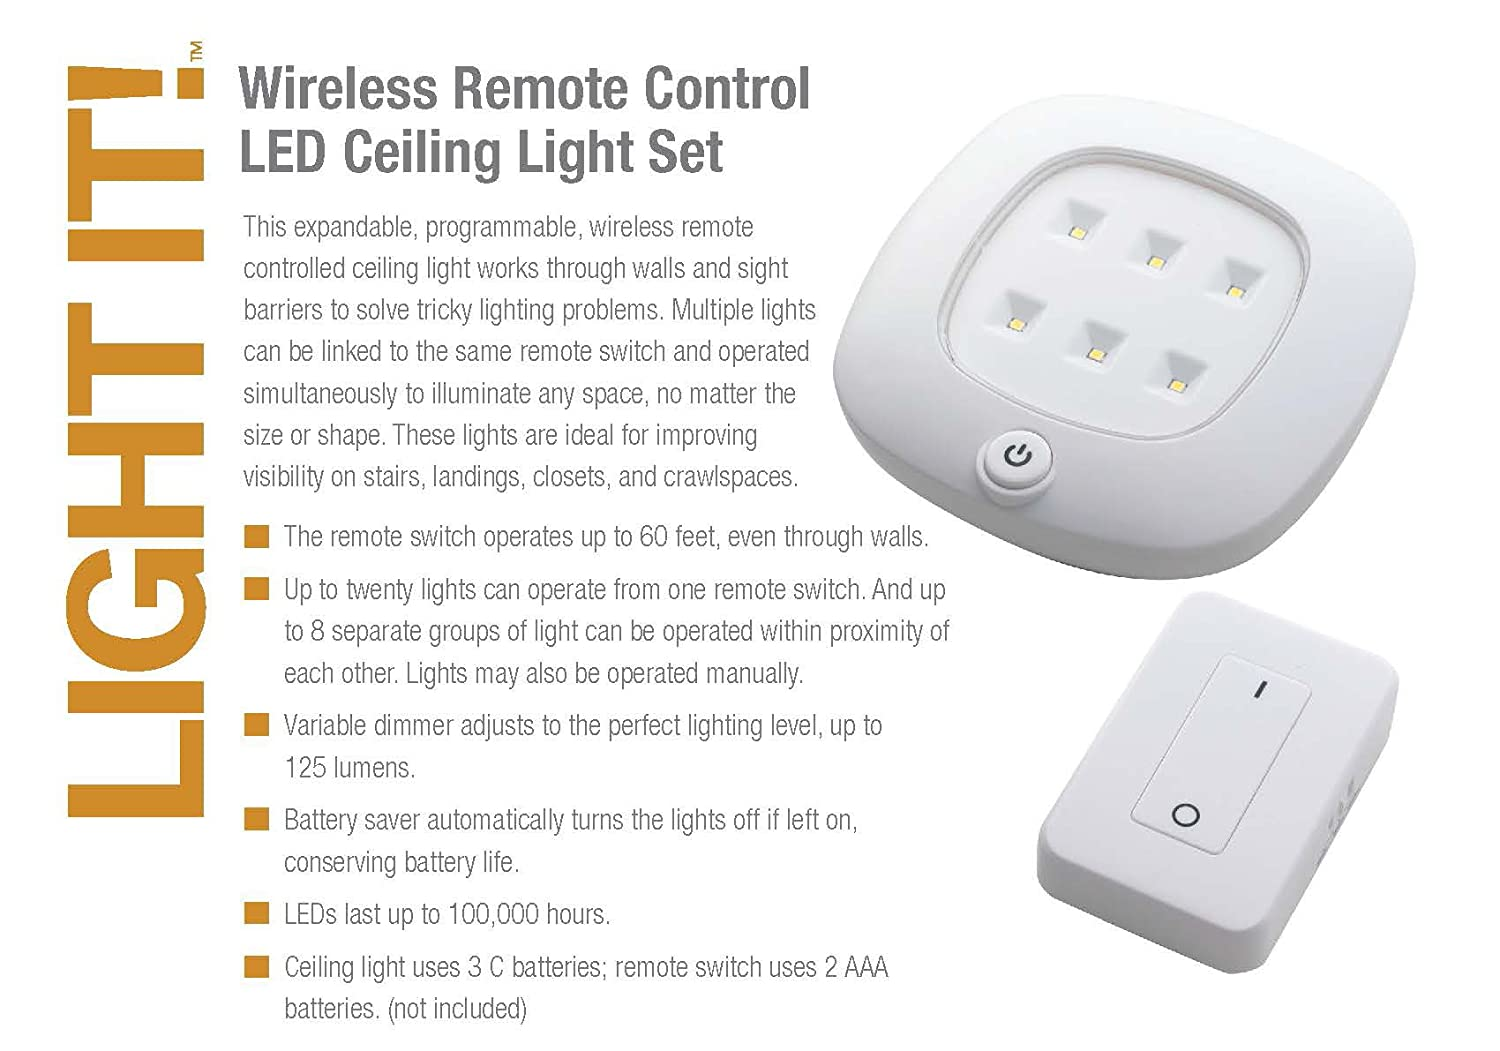 Light it by fulcrum 30032 308 remote control led wireless ceiling light it by fulcrum 30032 308 remote control led wireless ceiling light 58 inch white amazon aloadofball Image collections